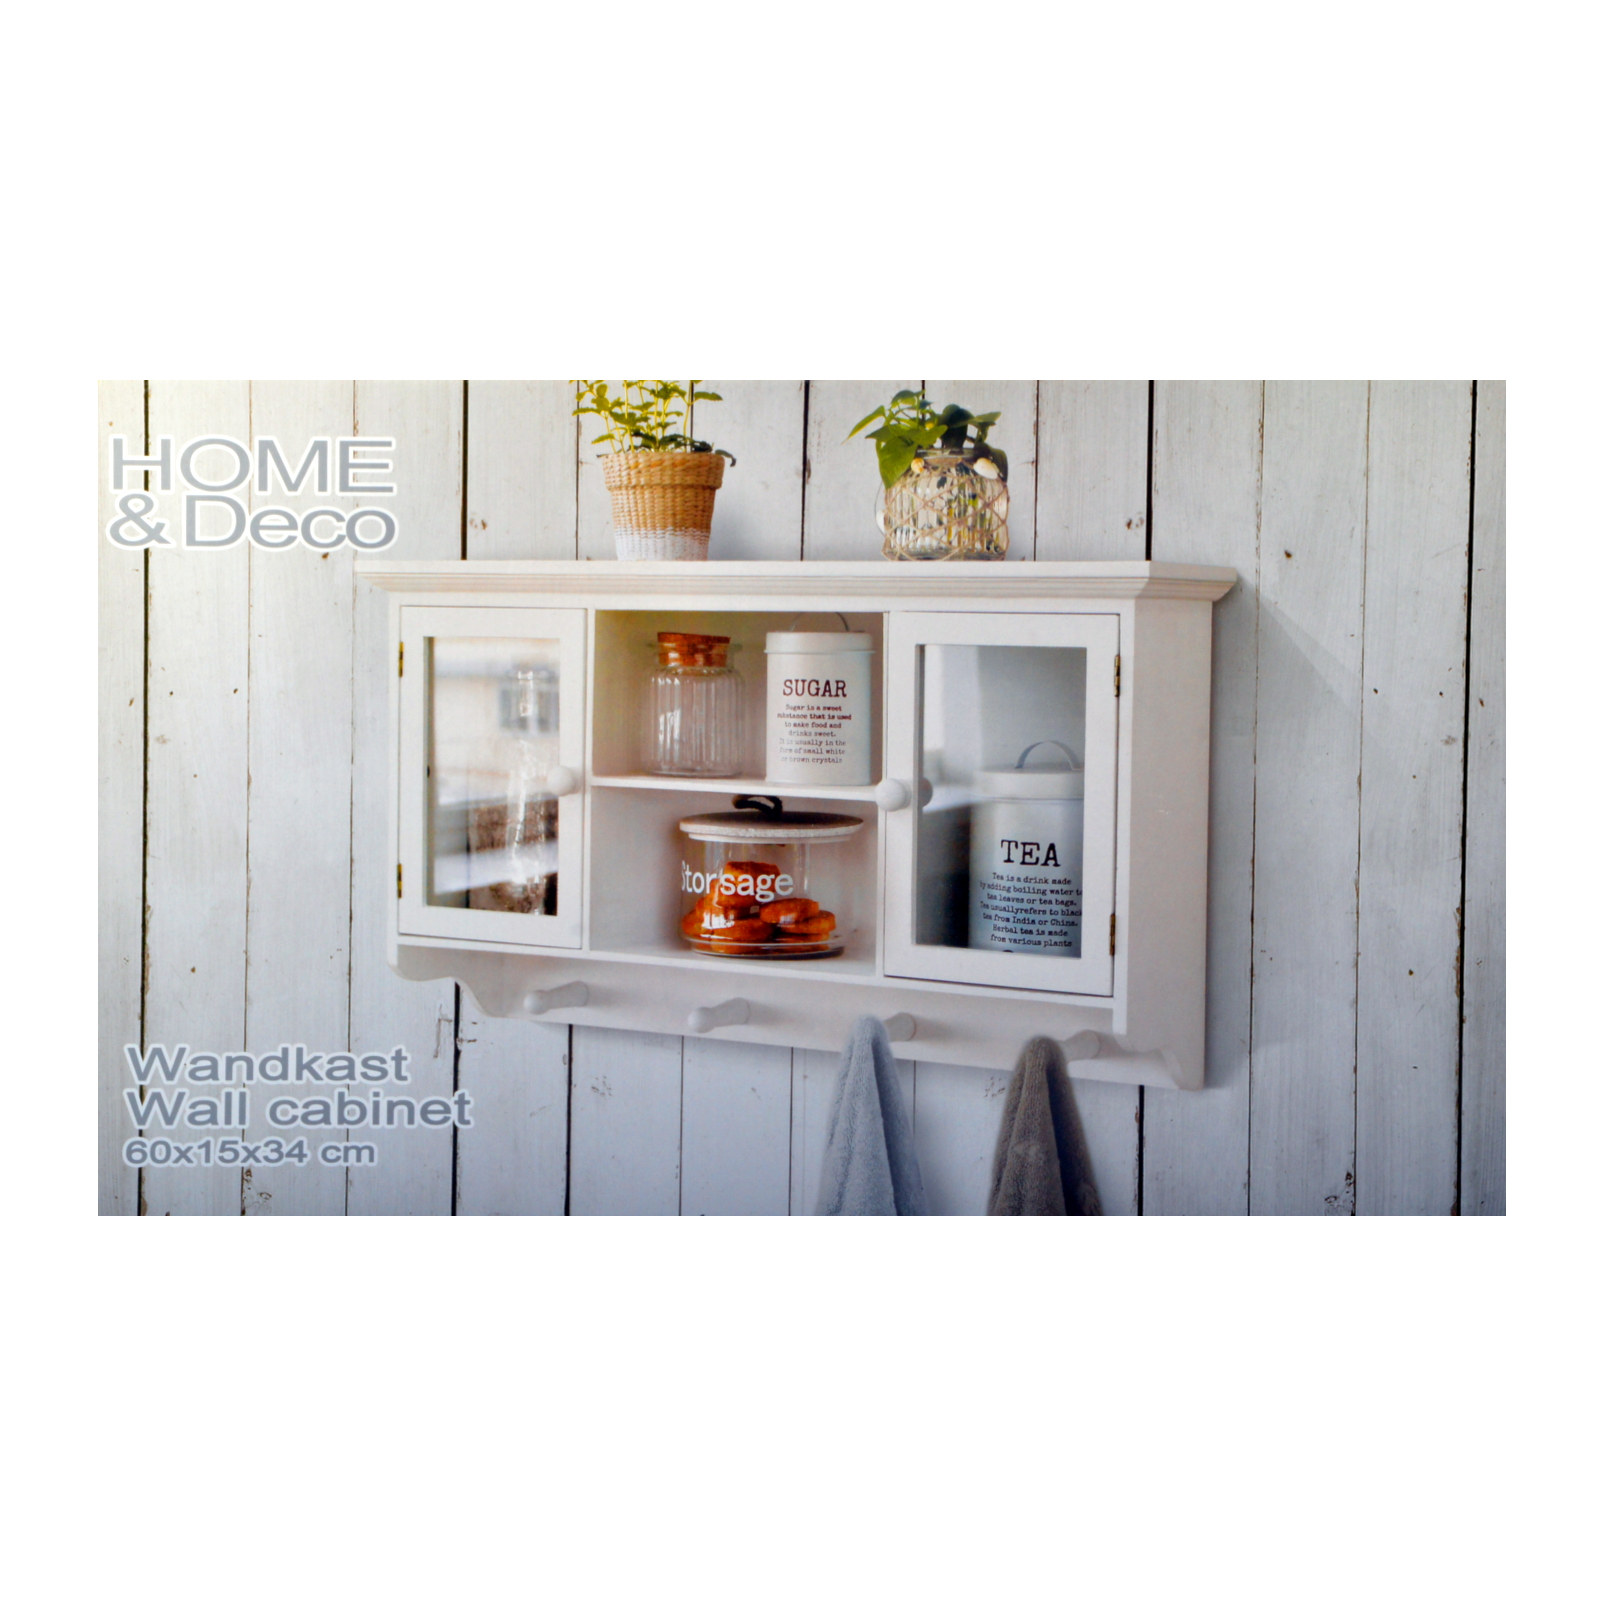 wall cabinet coat rack mounted showcase white shelf. Black Bedroom Furniture Sets. Home Design Ideas